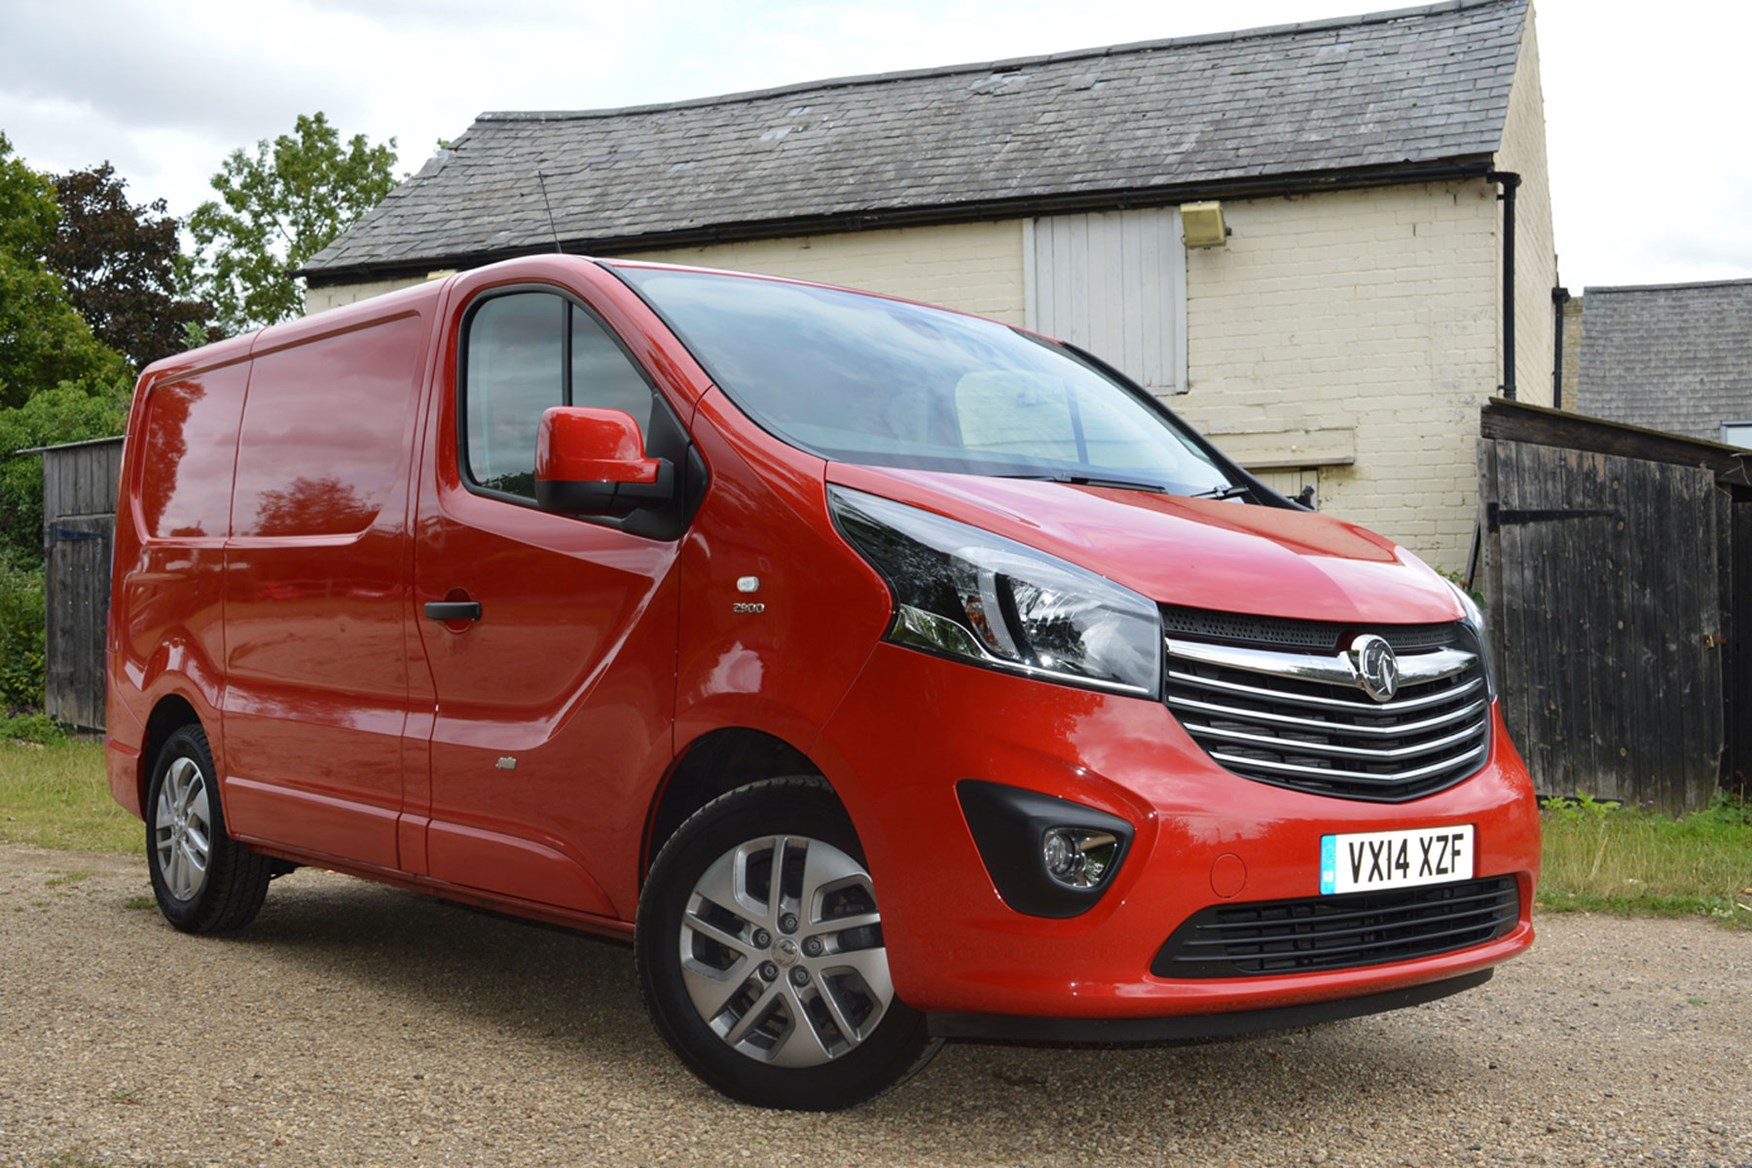 Vauxhall Vivaro Sportive EU5 review - front view, red